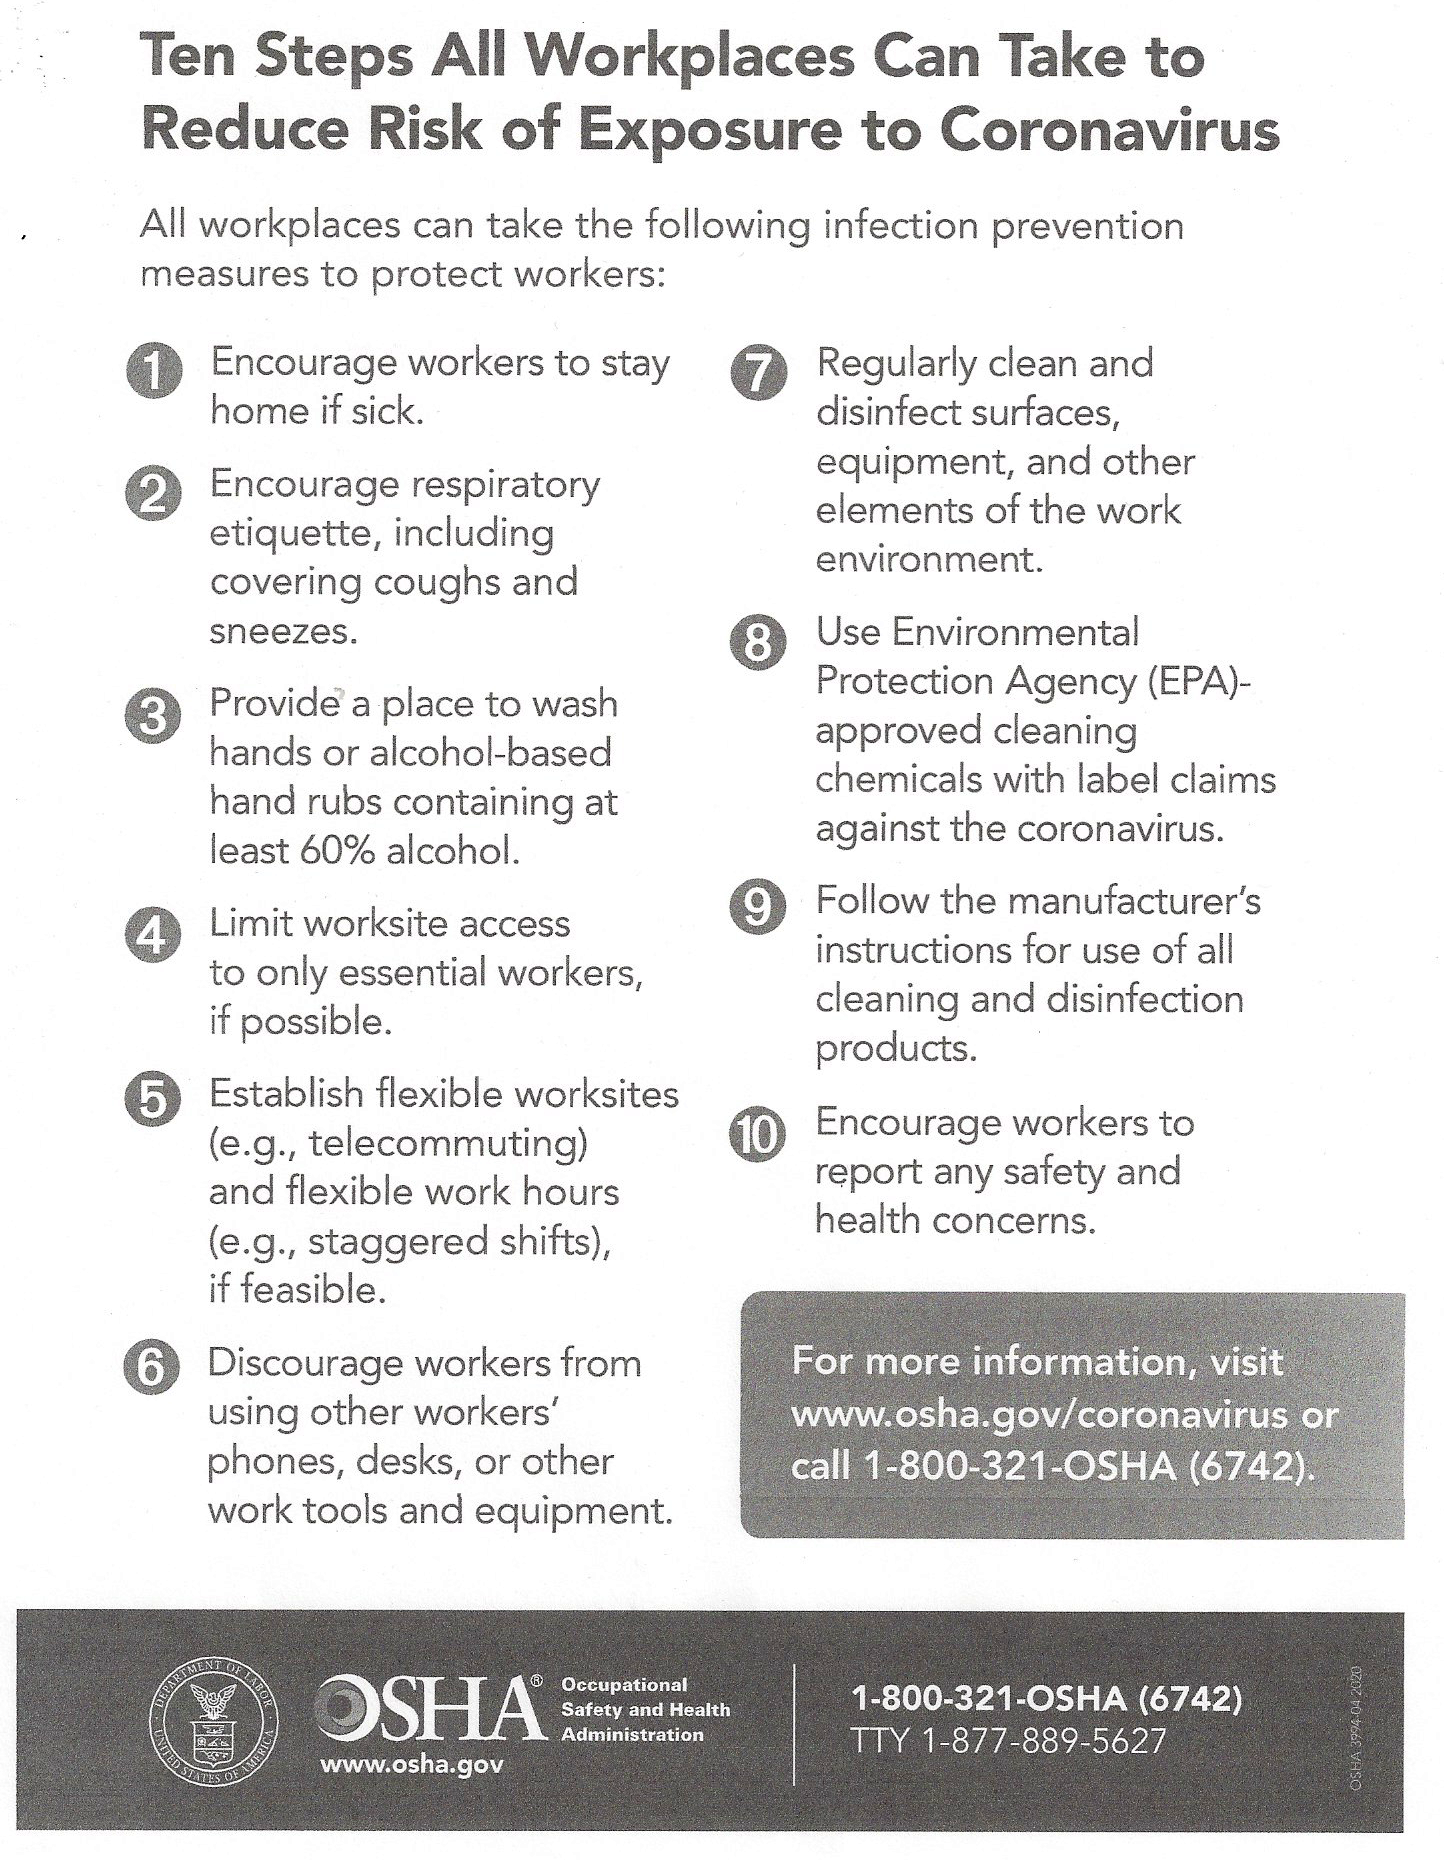 COVID-19 Prevention Tips from OSHA